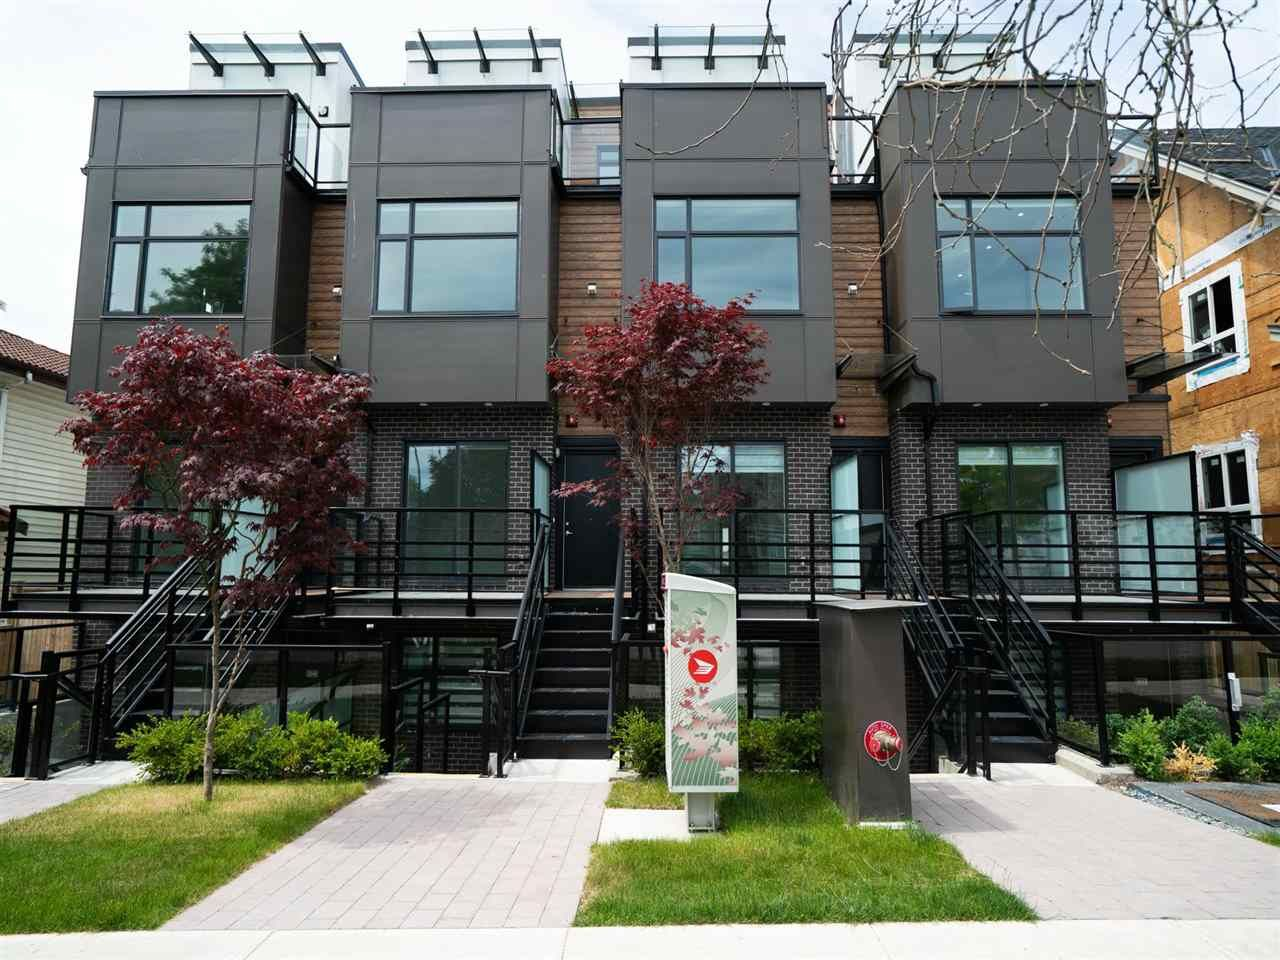 """Main Photo: 5033 CHAMBERS Street in Vancouver: Collingwood VE Townhouse for sale in """"8 On Chambers"""" (Vancouver East)  : MLS®# R2612581"""